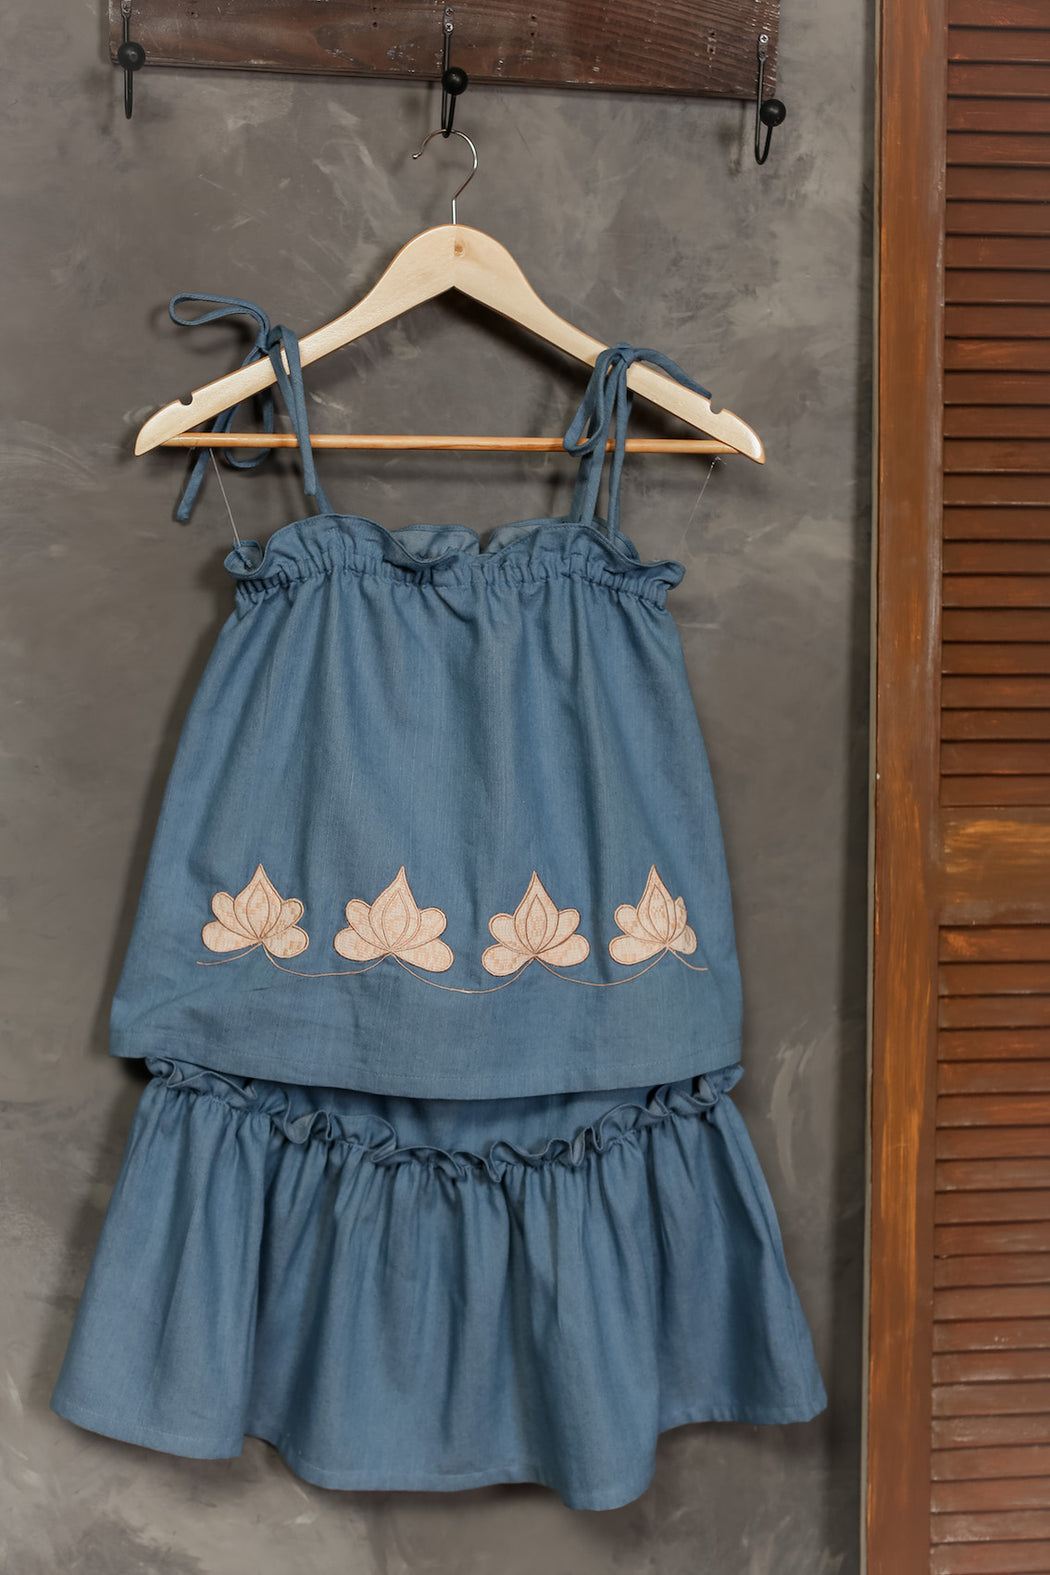 Gaia Embroidered Top & Skirt Set - Chambray